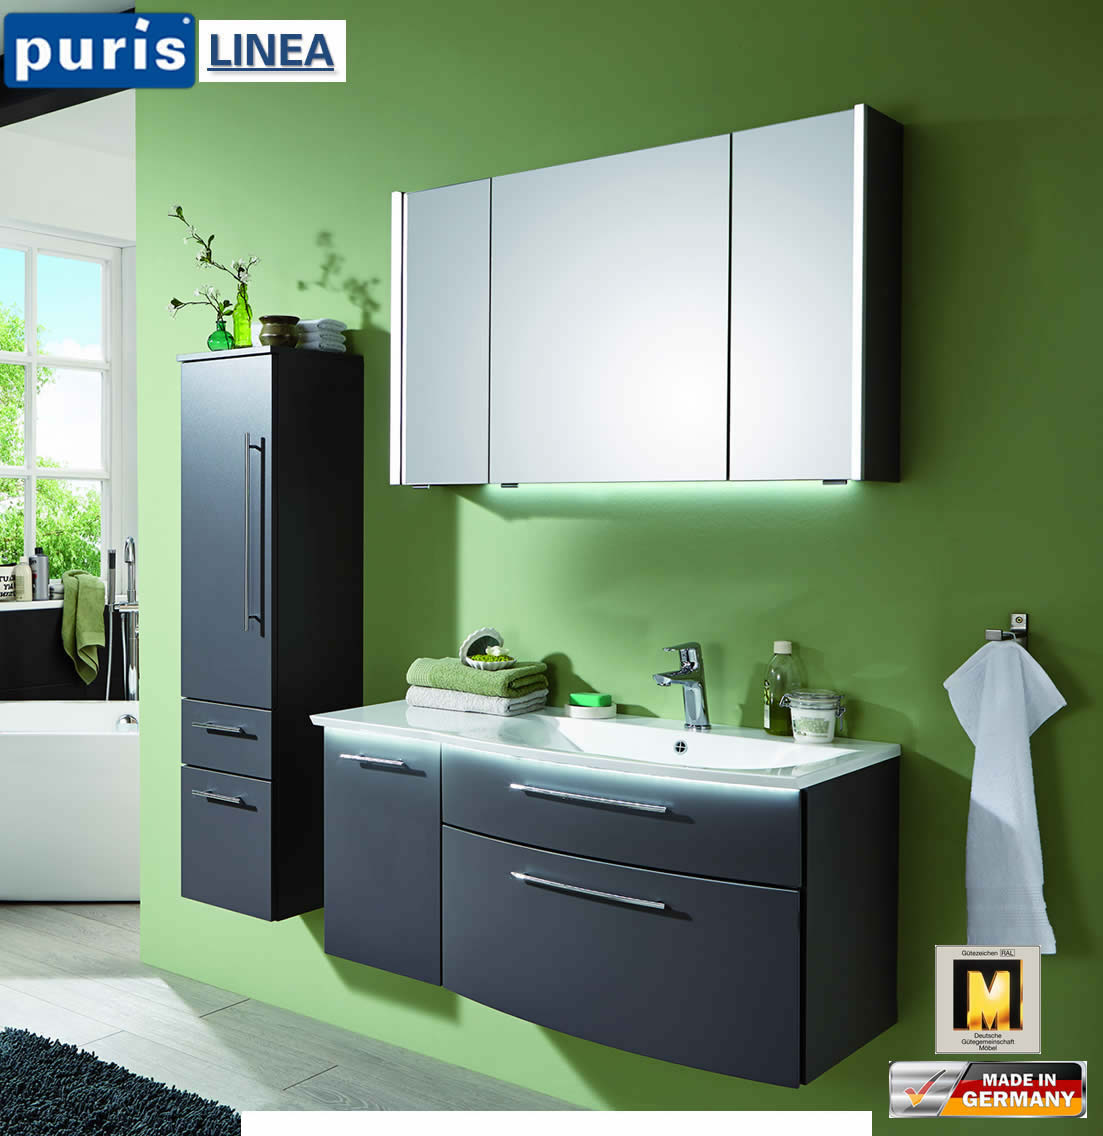 puris linea badm bel set 100 cm fb21 l impuls home. Black Bedroom Furniture Sets. Home Design Ideas